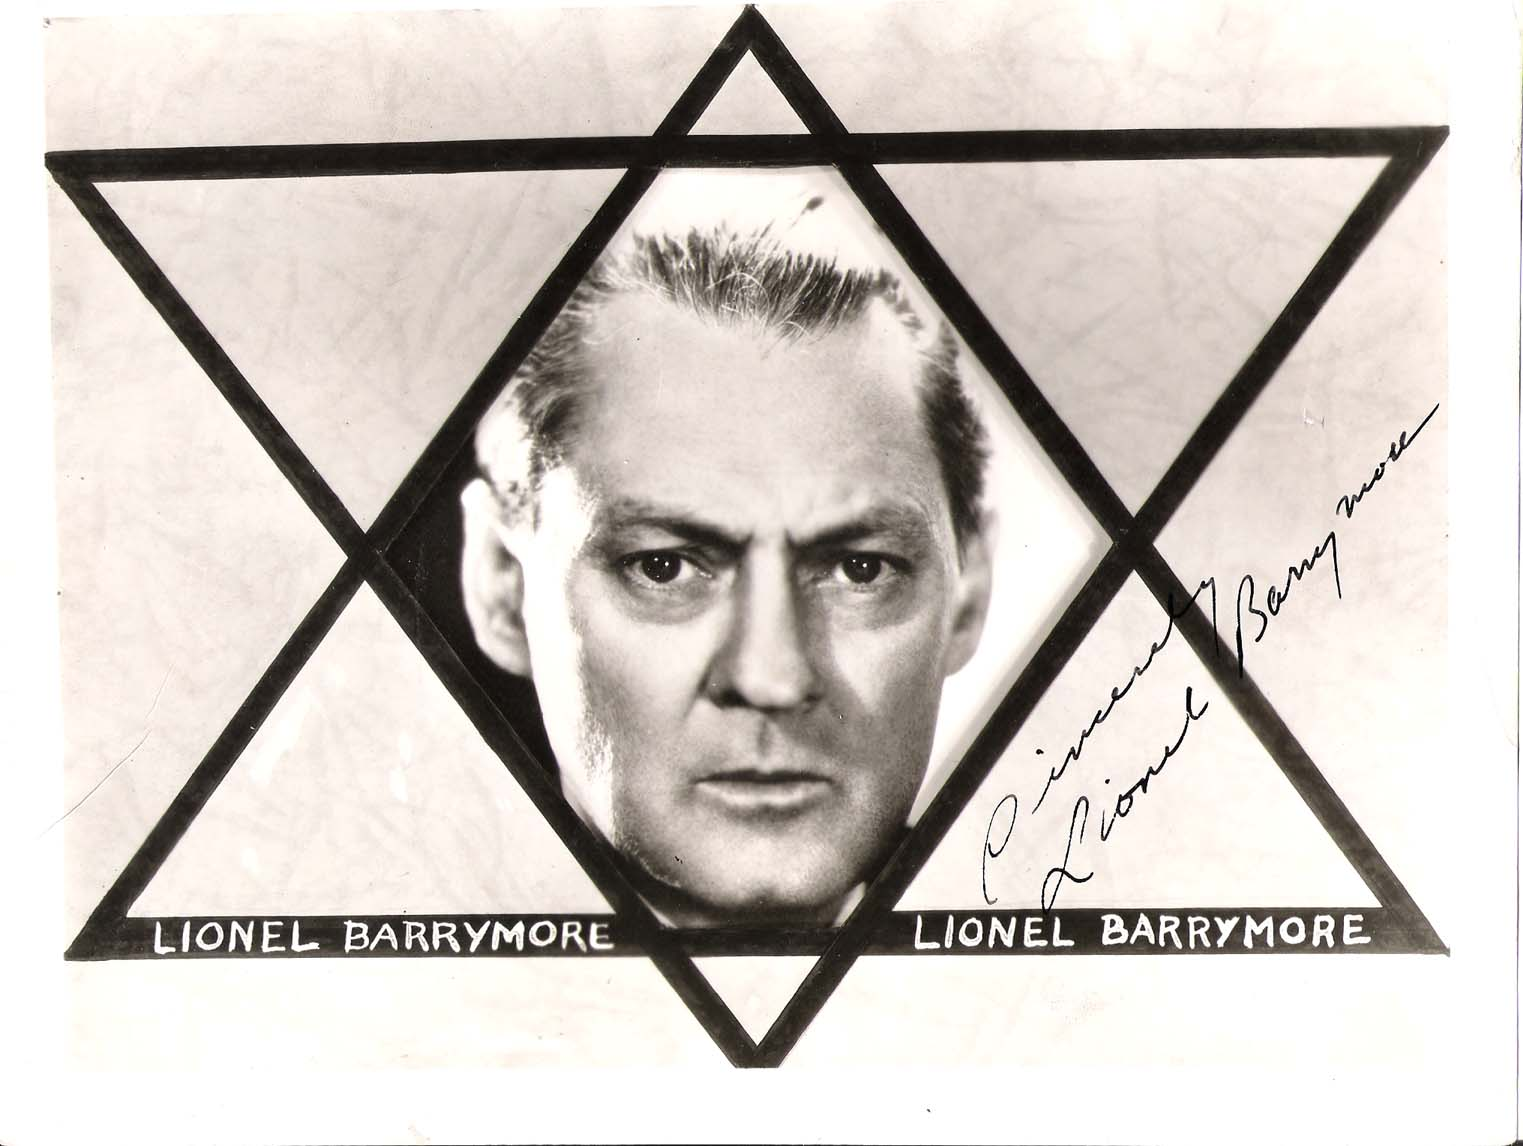 Lionel Barrymore Actor Of Stage Screen And Radio He Was Mr Potter In It 39 S A Wonderful Life